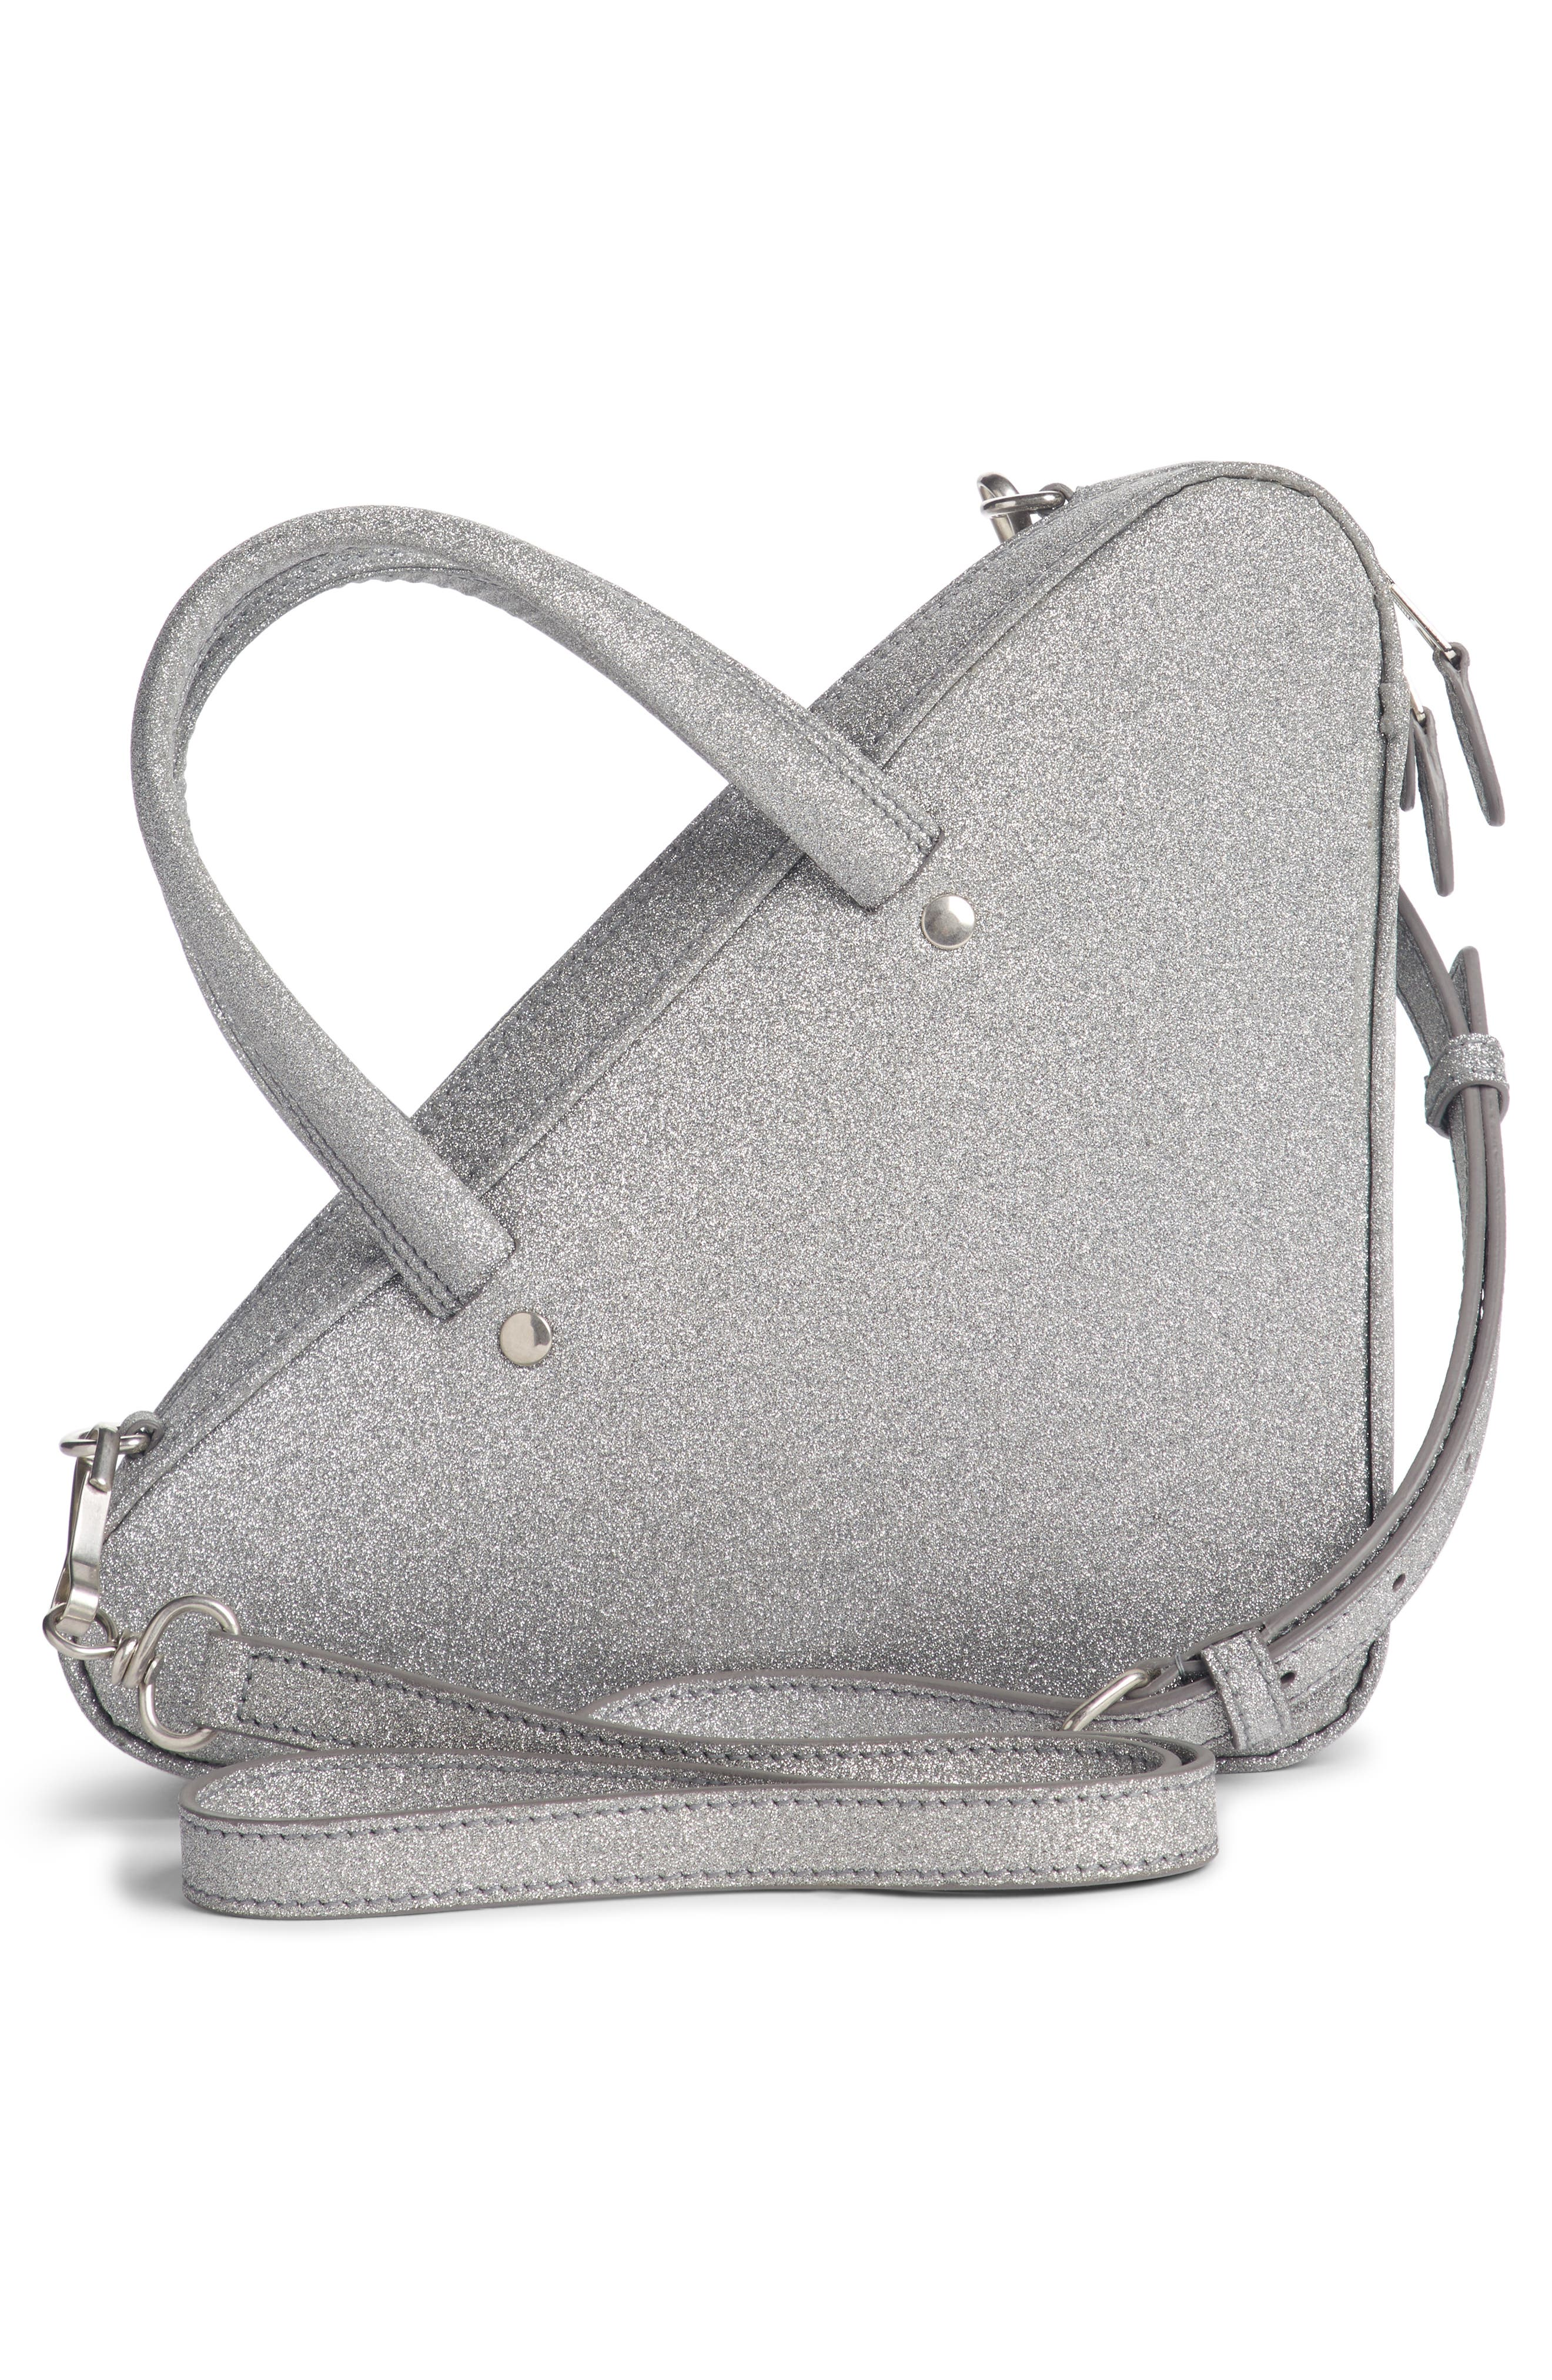 Extra Small Glitter Triangle Leather Bag,                             Alternate thumbnail 3, color,                             Argent/ Noir